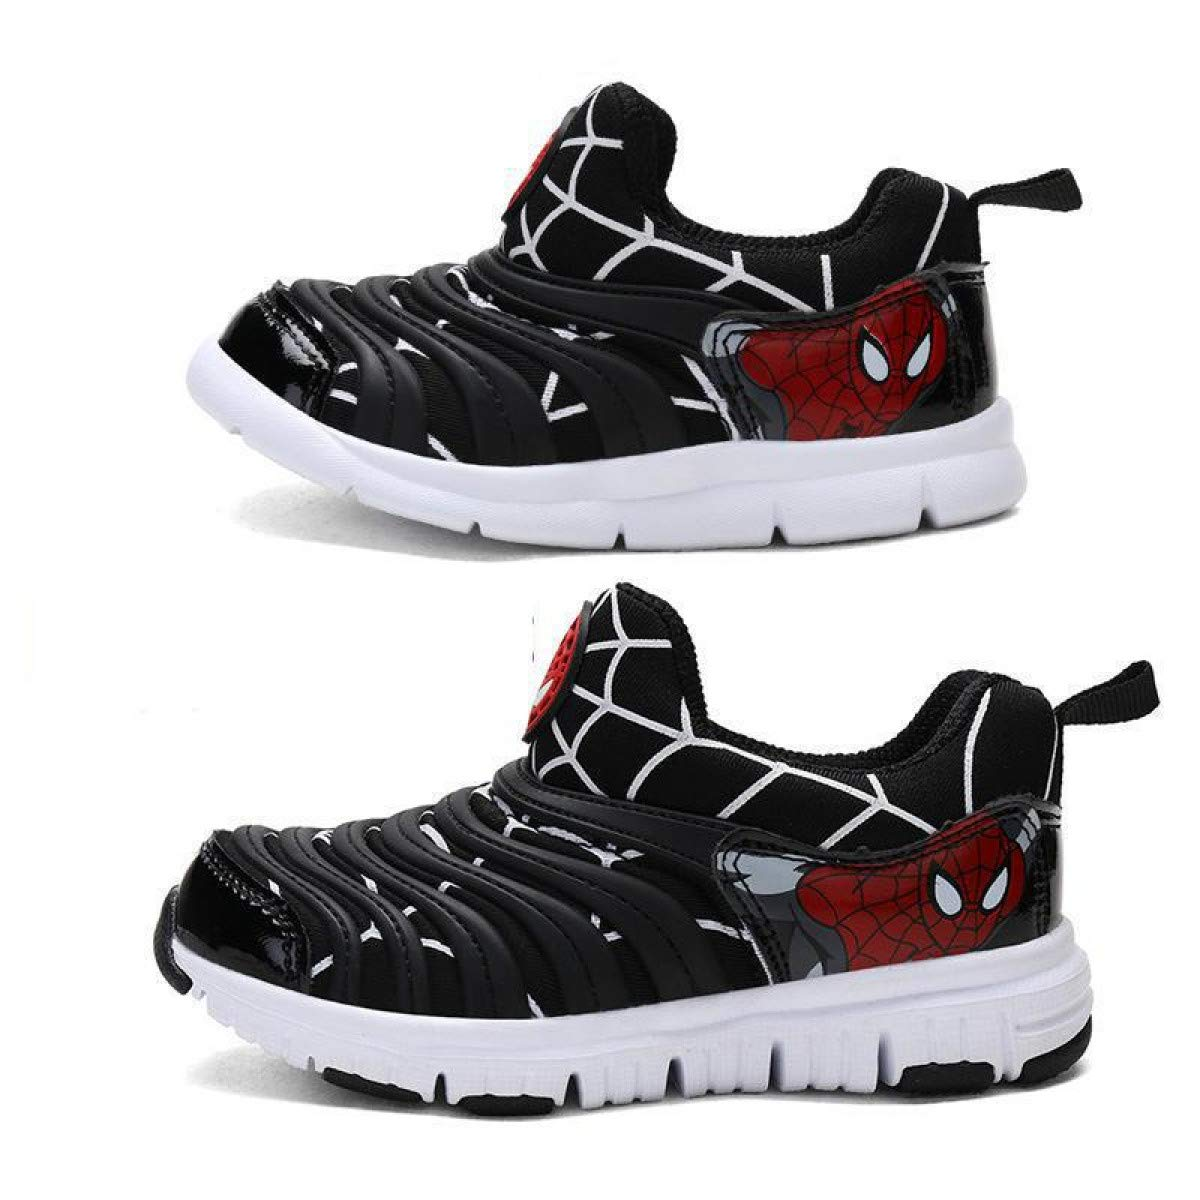 Amazon.com: BIG LION New Spiderman Shoes Kids Shoes Boys ...